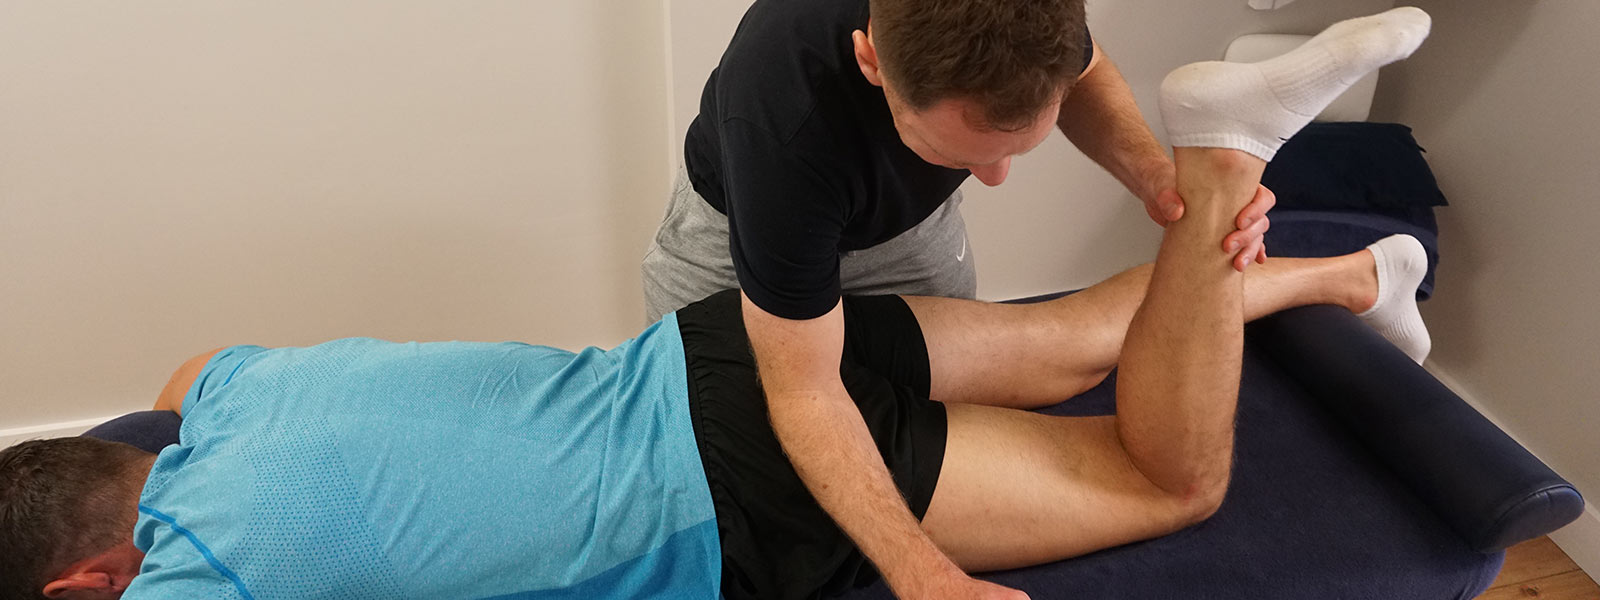 Sports Massage & Soft Tissue Therapy for performance